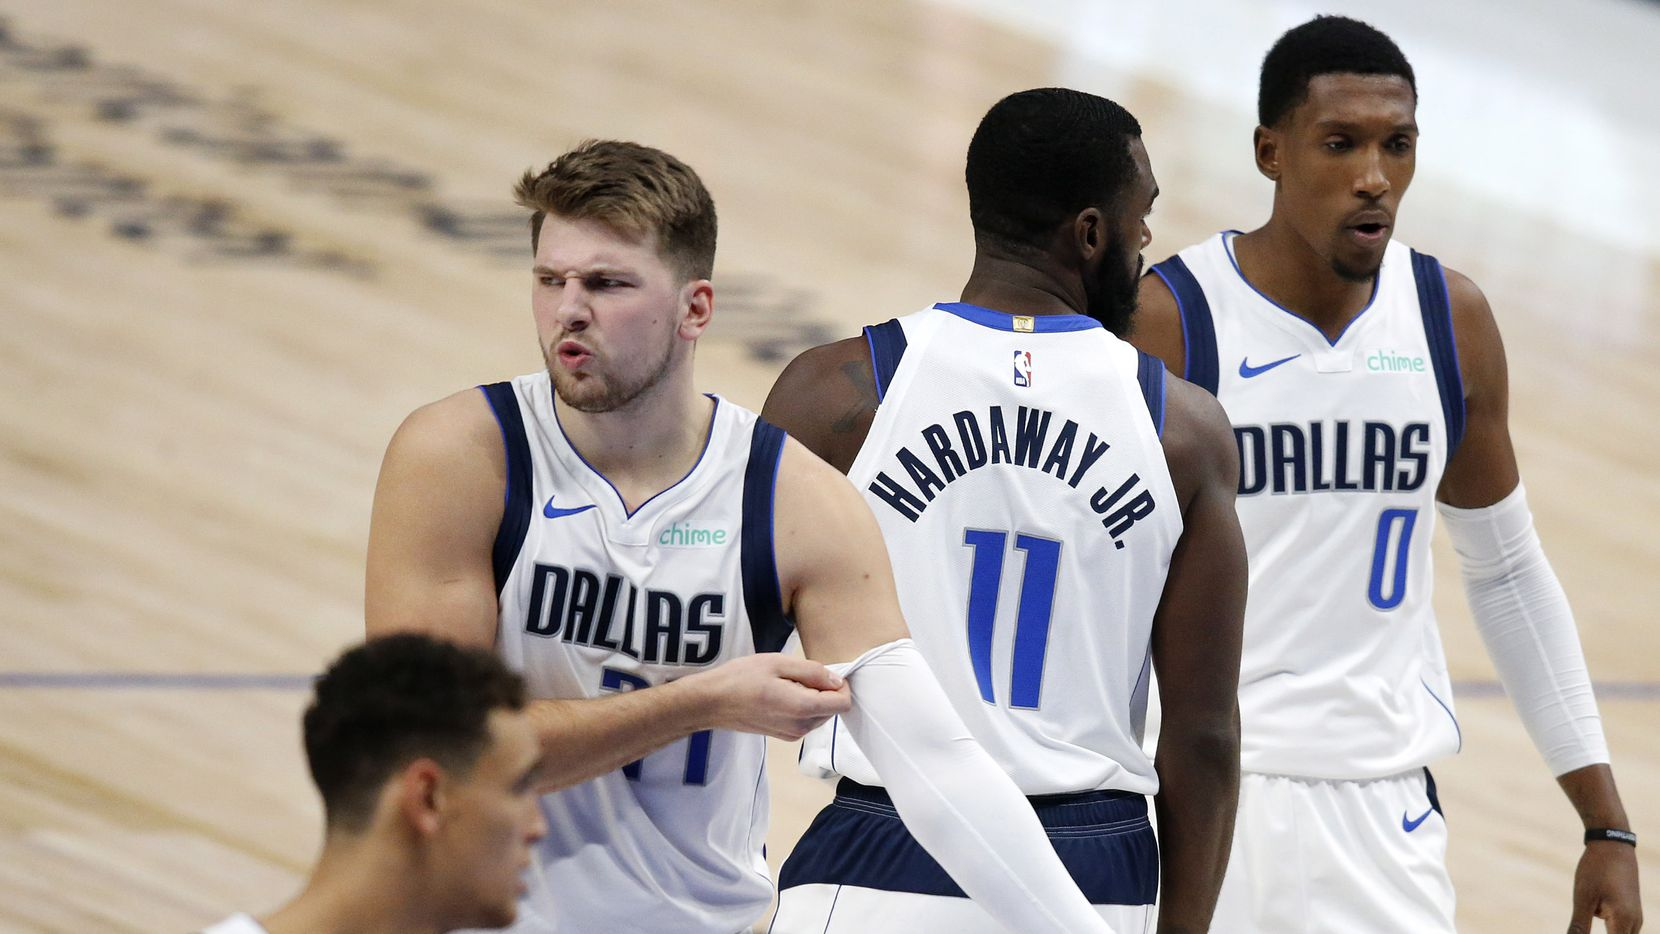 Dallas Mavericks guard Luka Doncic (77) reacts after drawing a call against the Minnesota Timberwolves in the second quarter of a preseason game at the American Airlines Center in Dallas, Thursday, December 17, 2020.